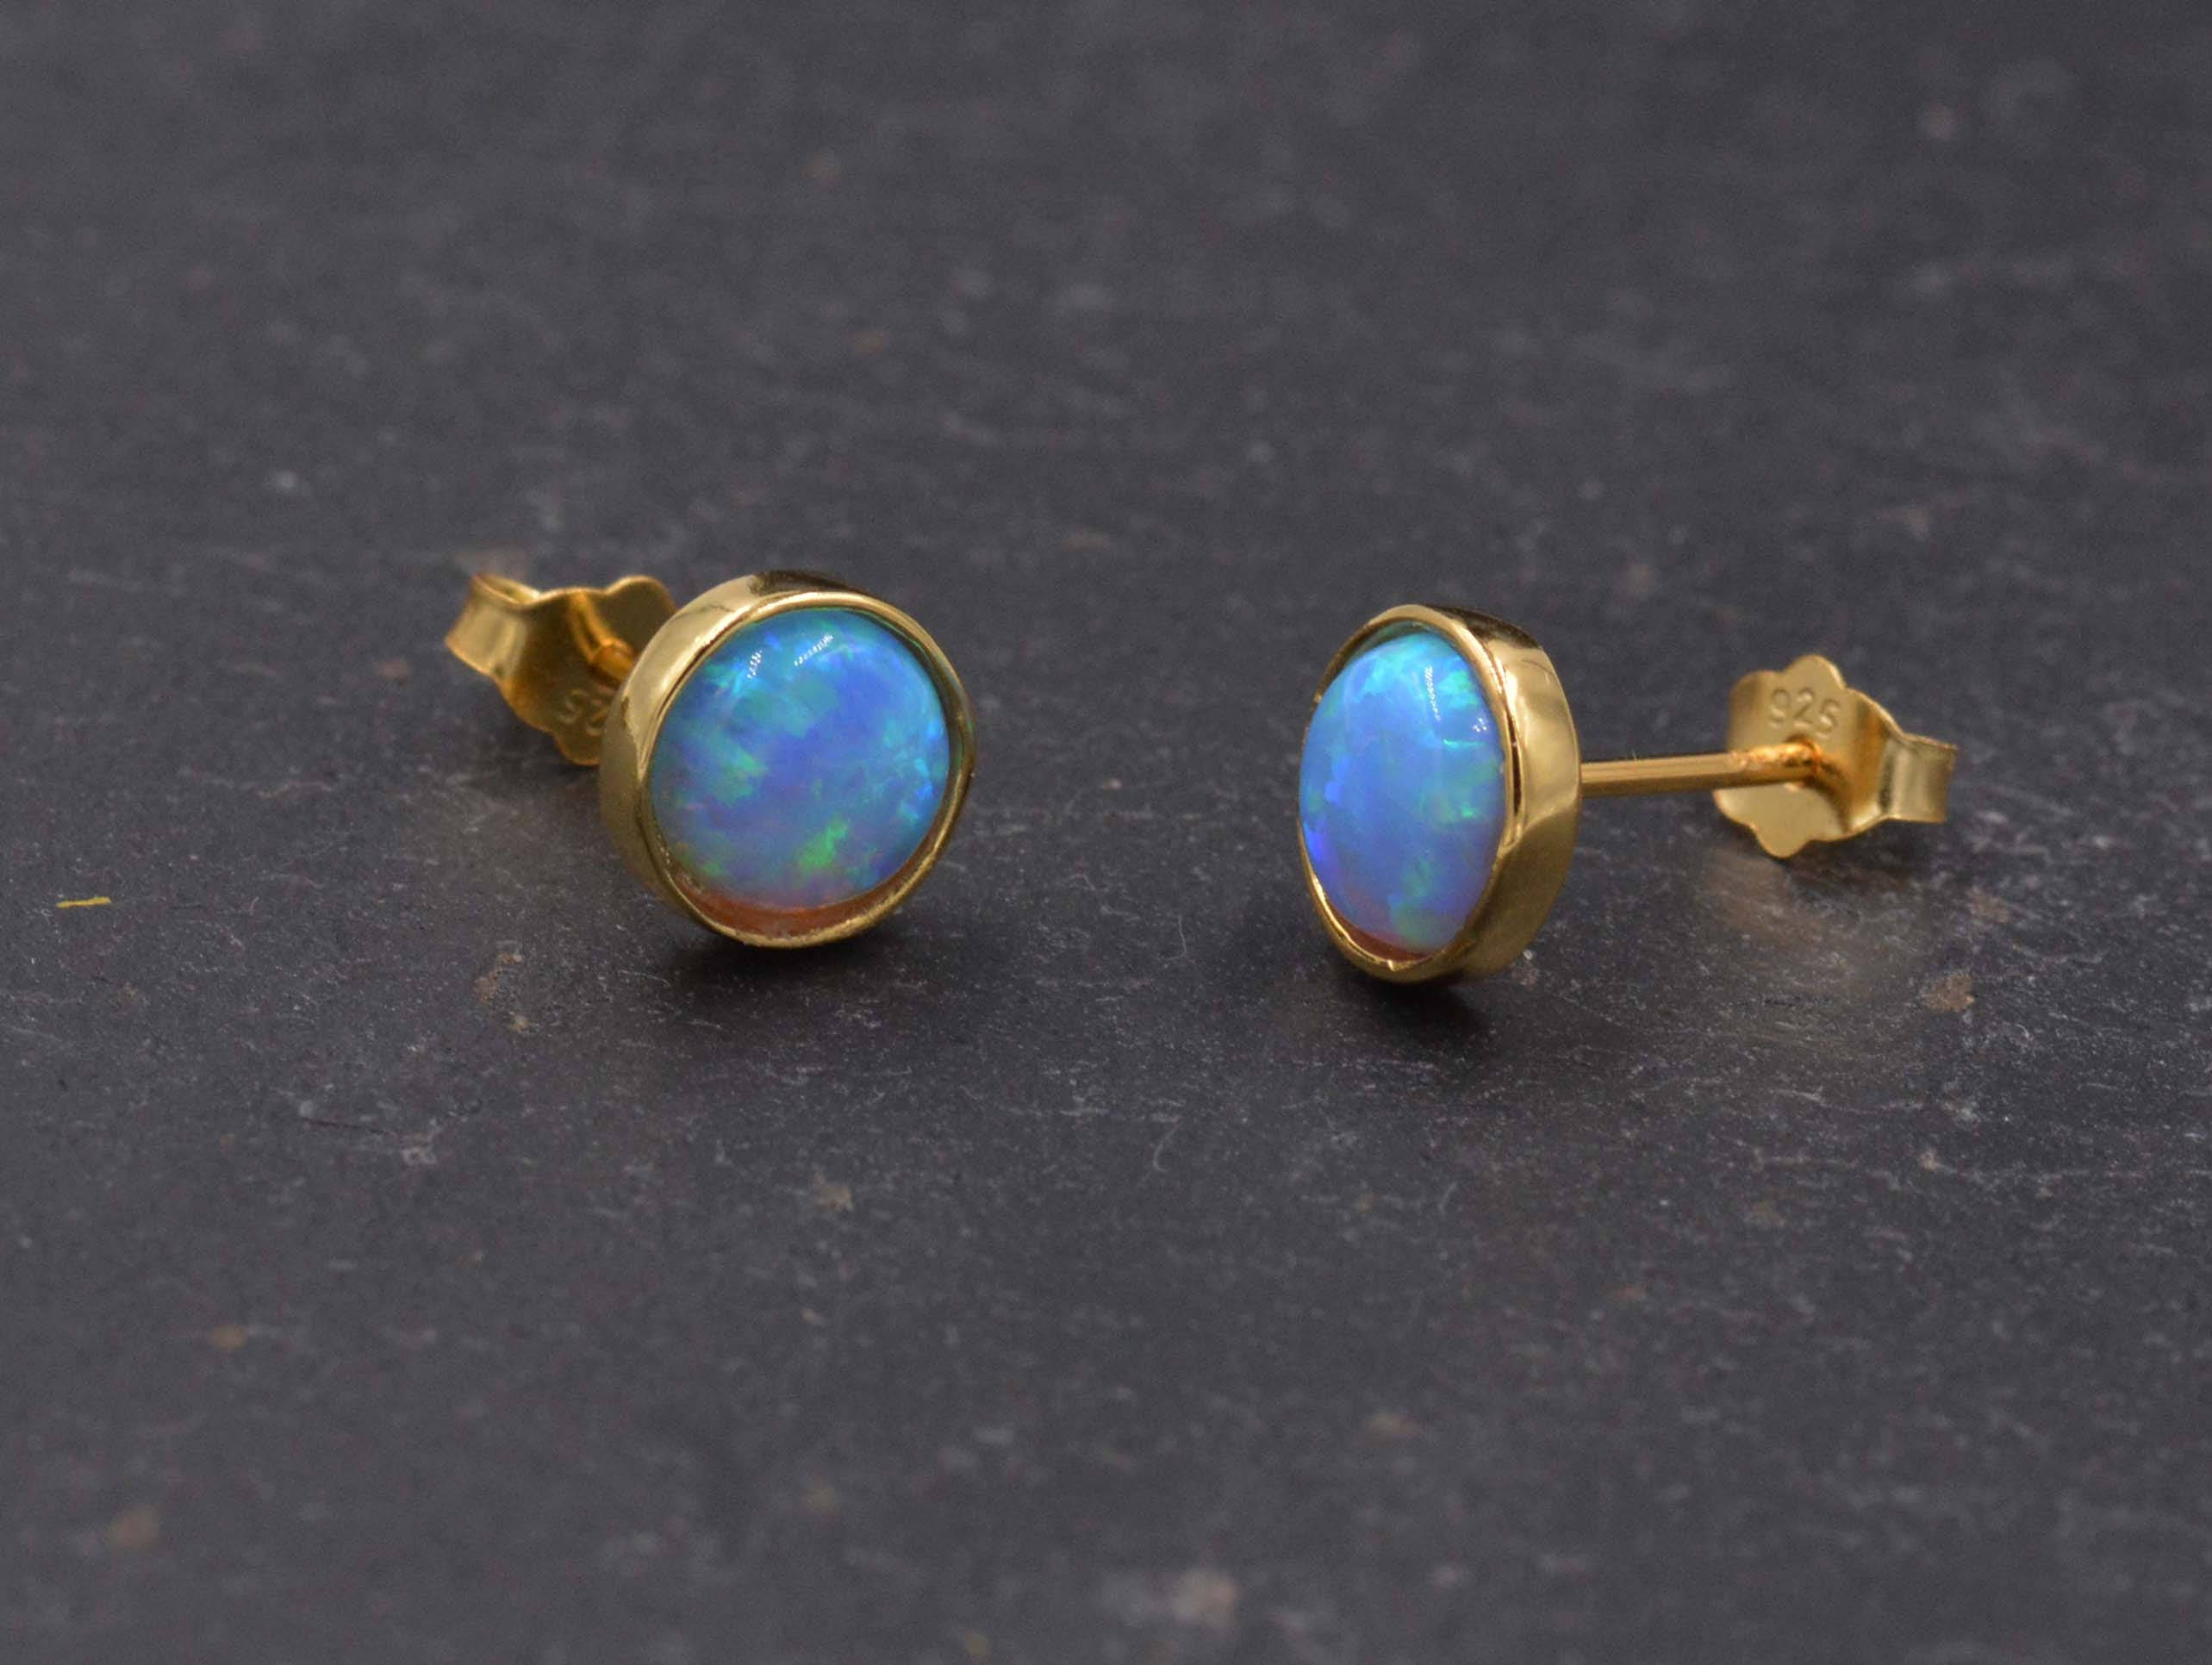 kite quartz lyst marquis normal midnight fine gallery sterling stud alexis bittar jewelry blue product opal silver earrings